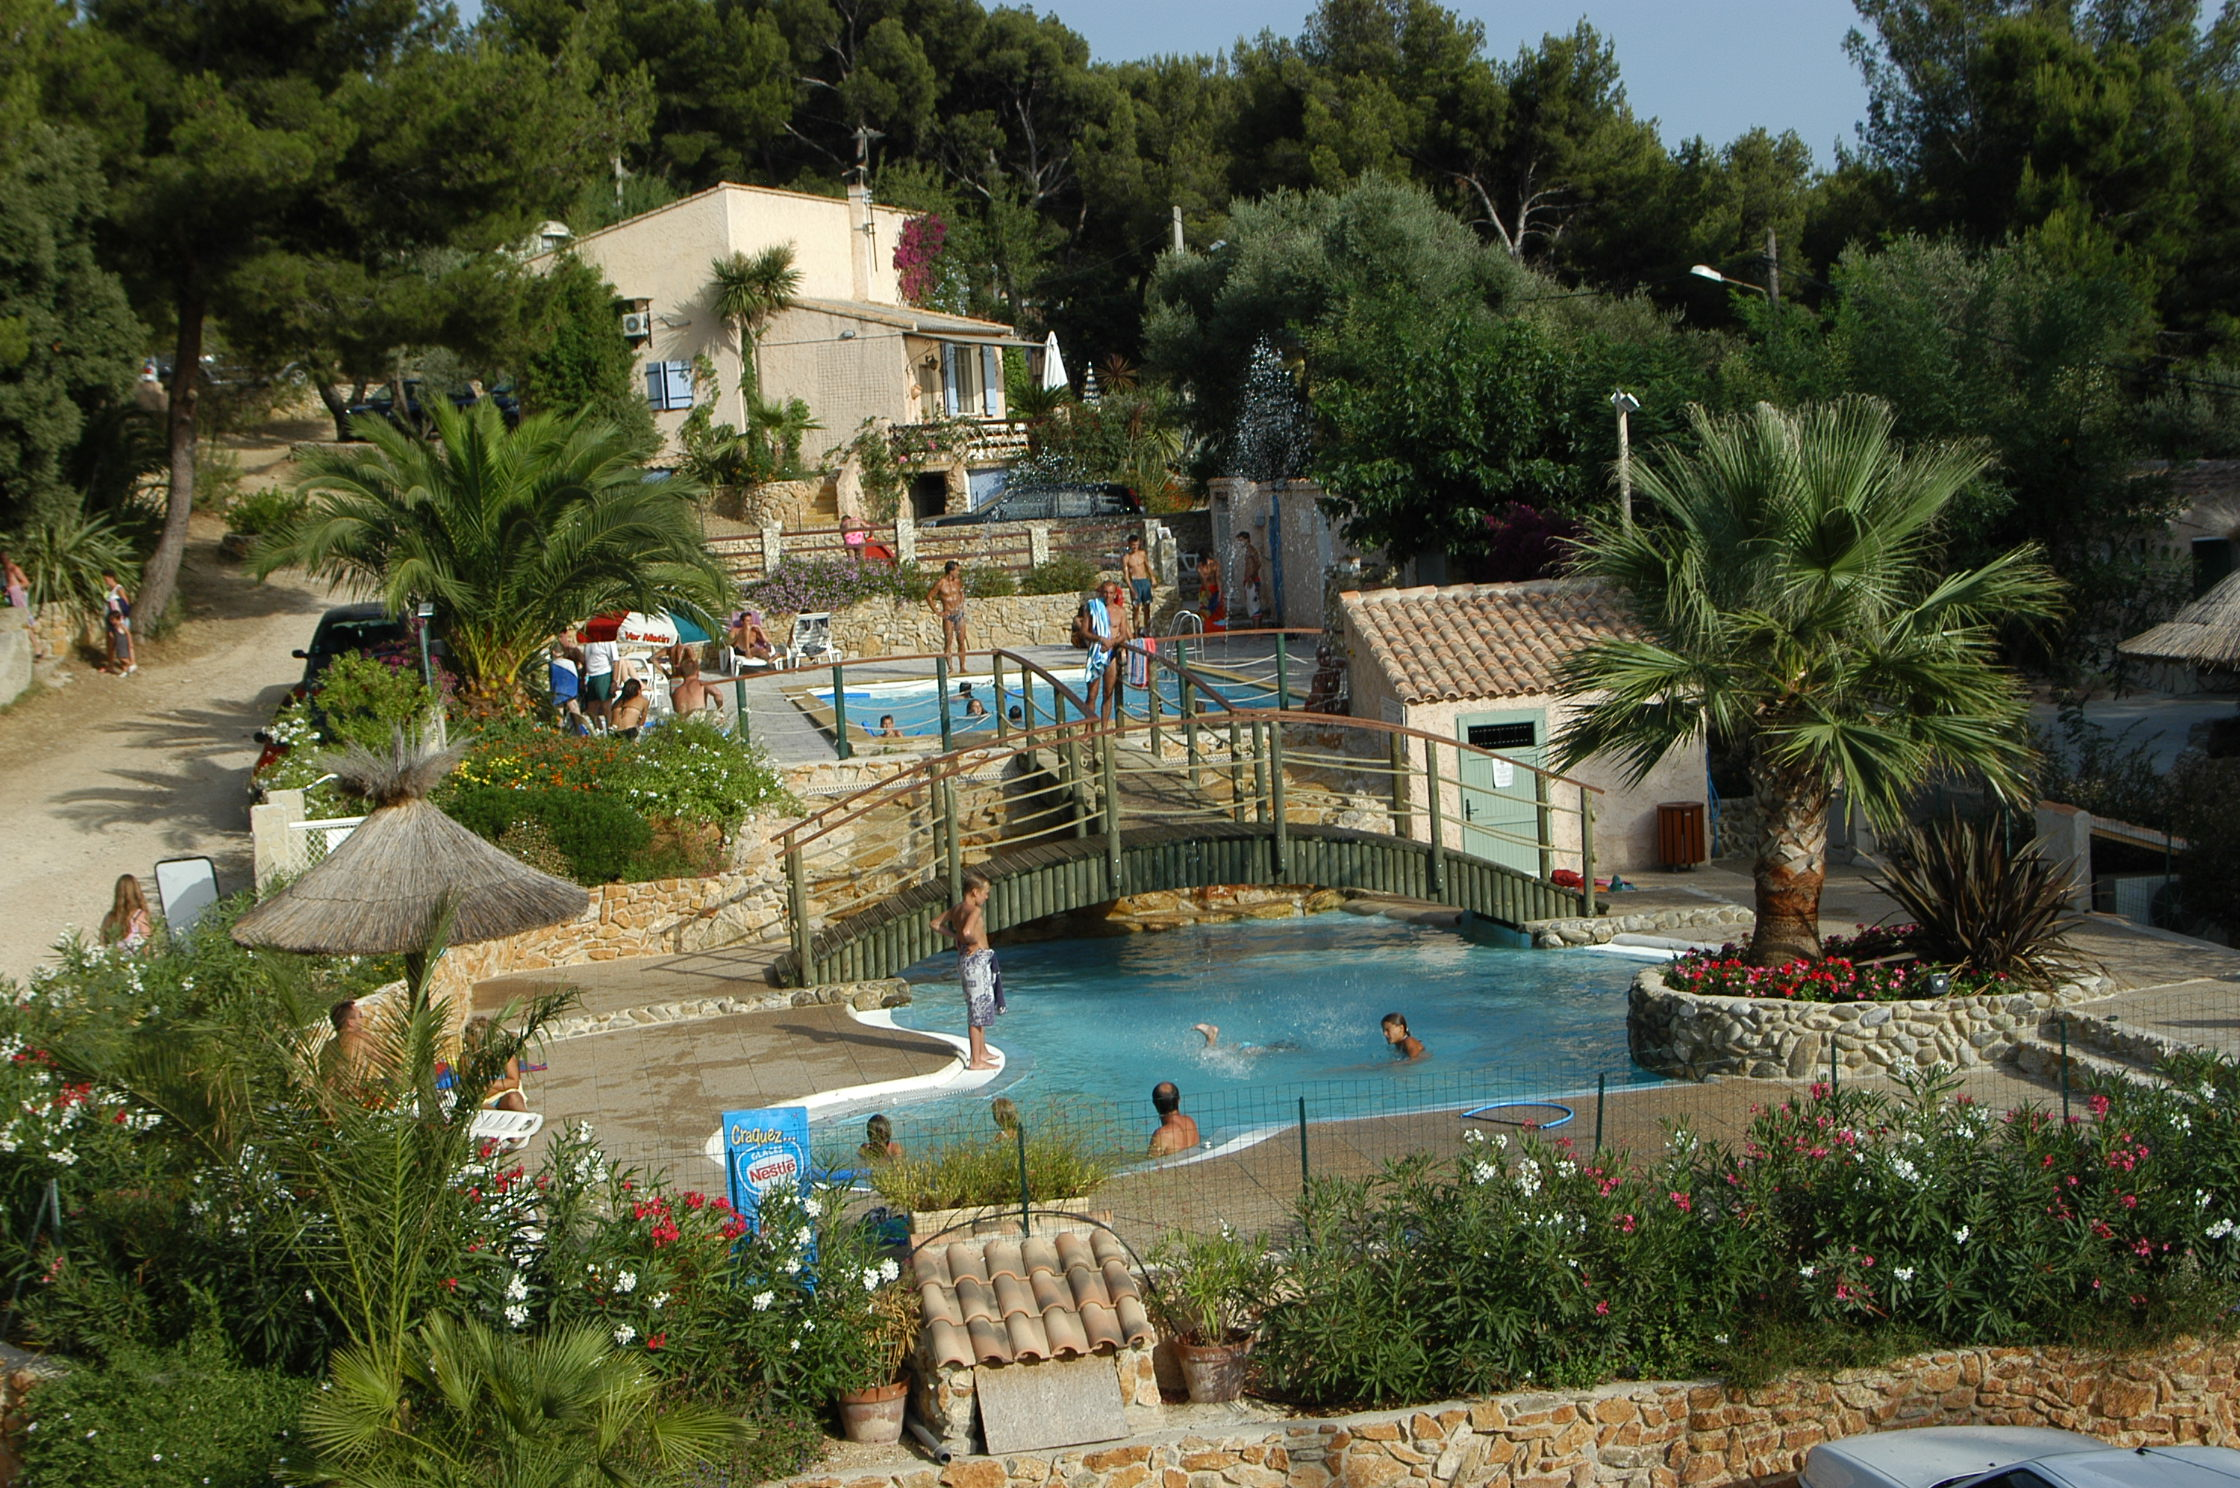 Camping clos st therese saint cyr sur mer france voir for Voir piscine